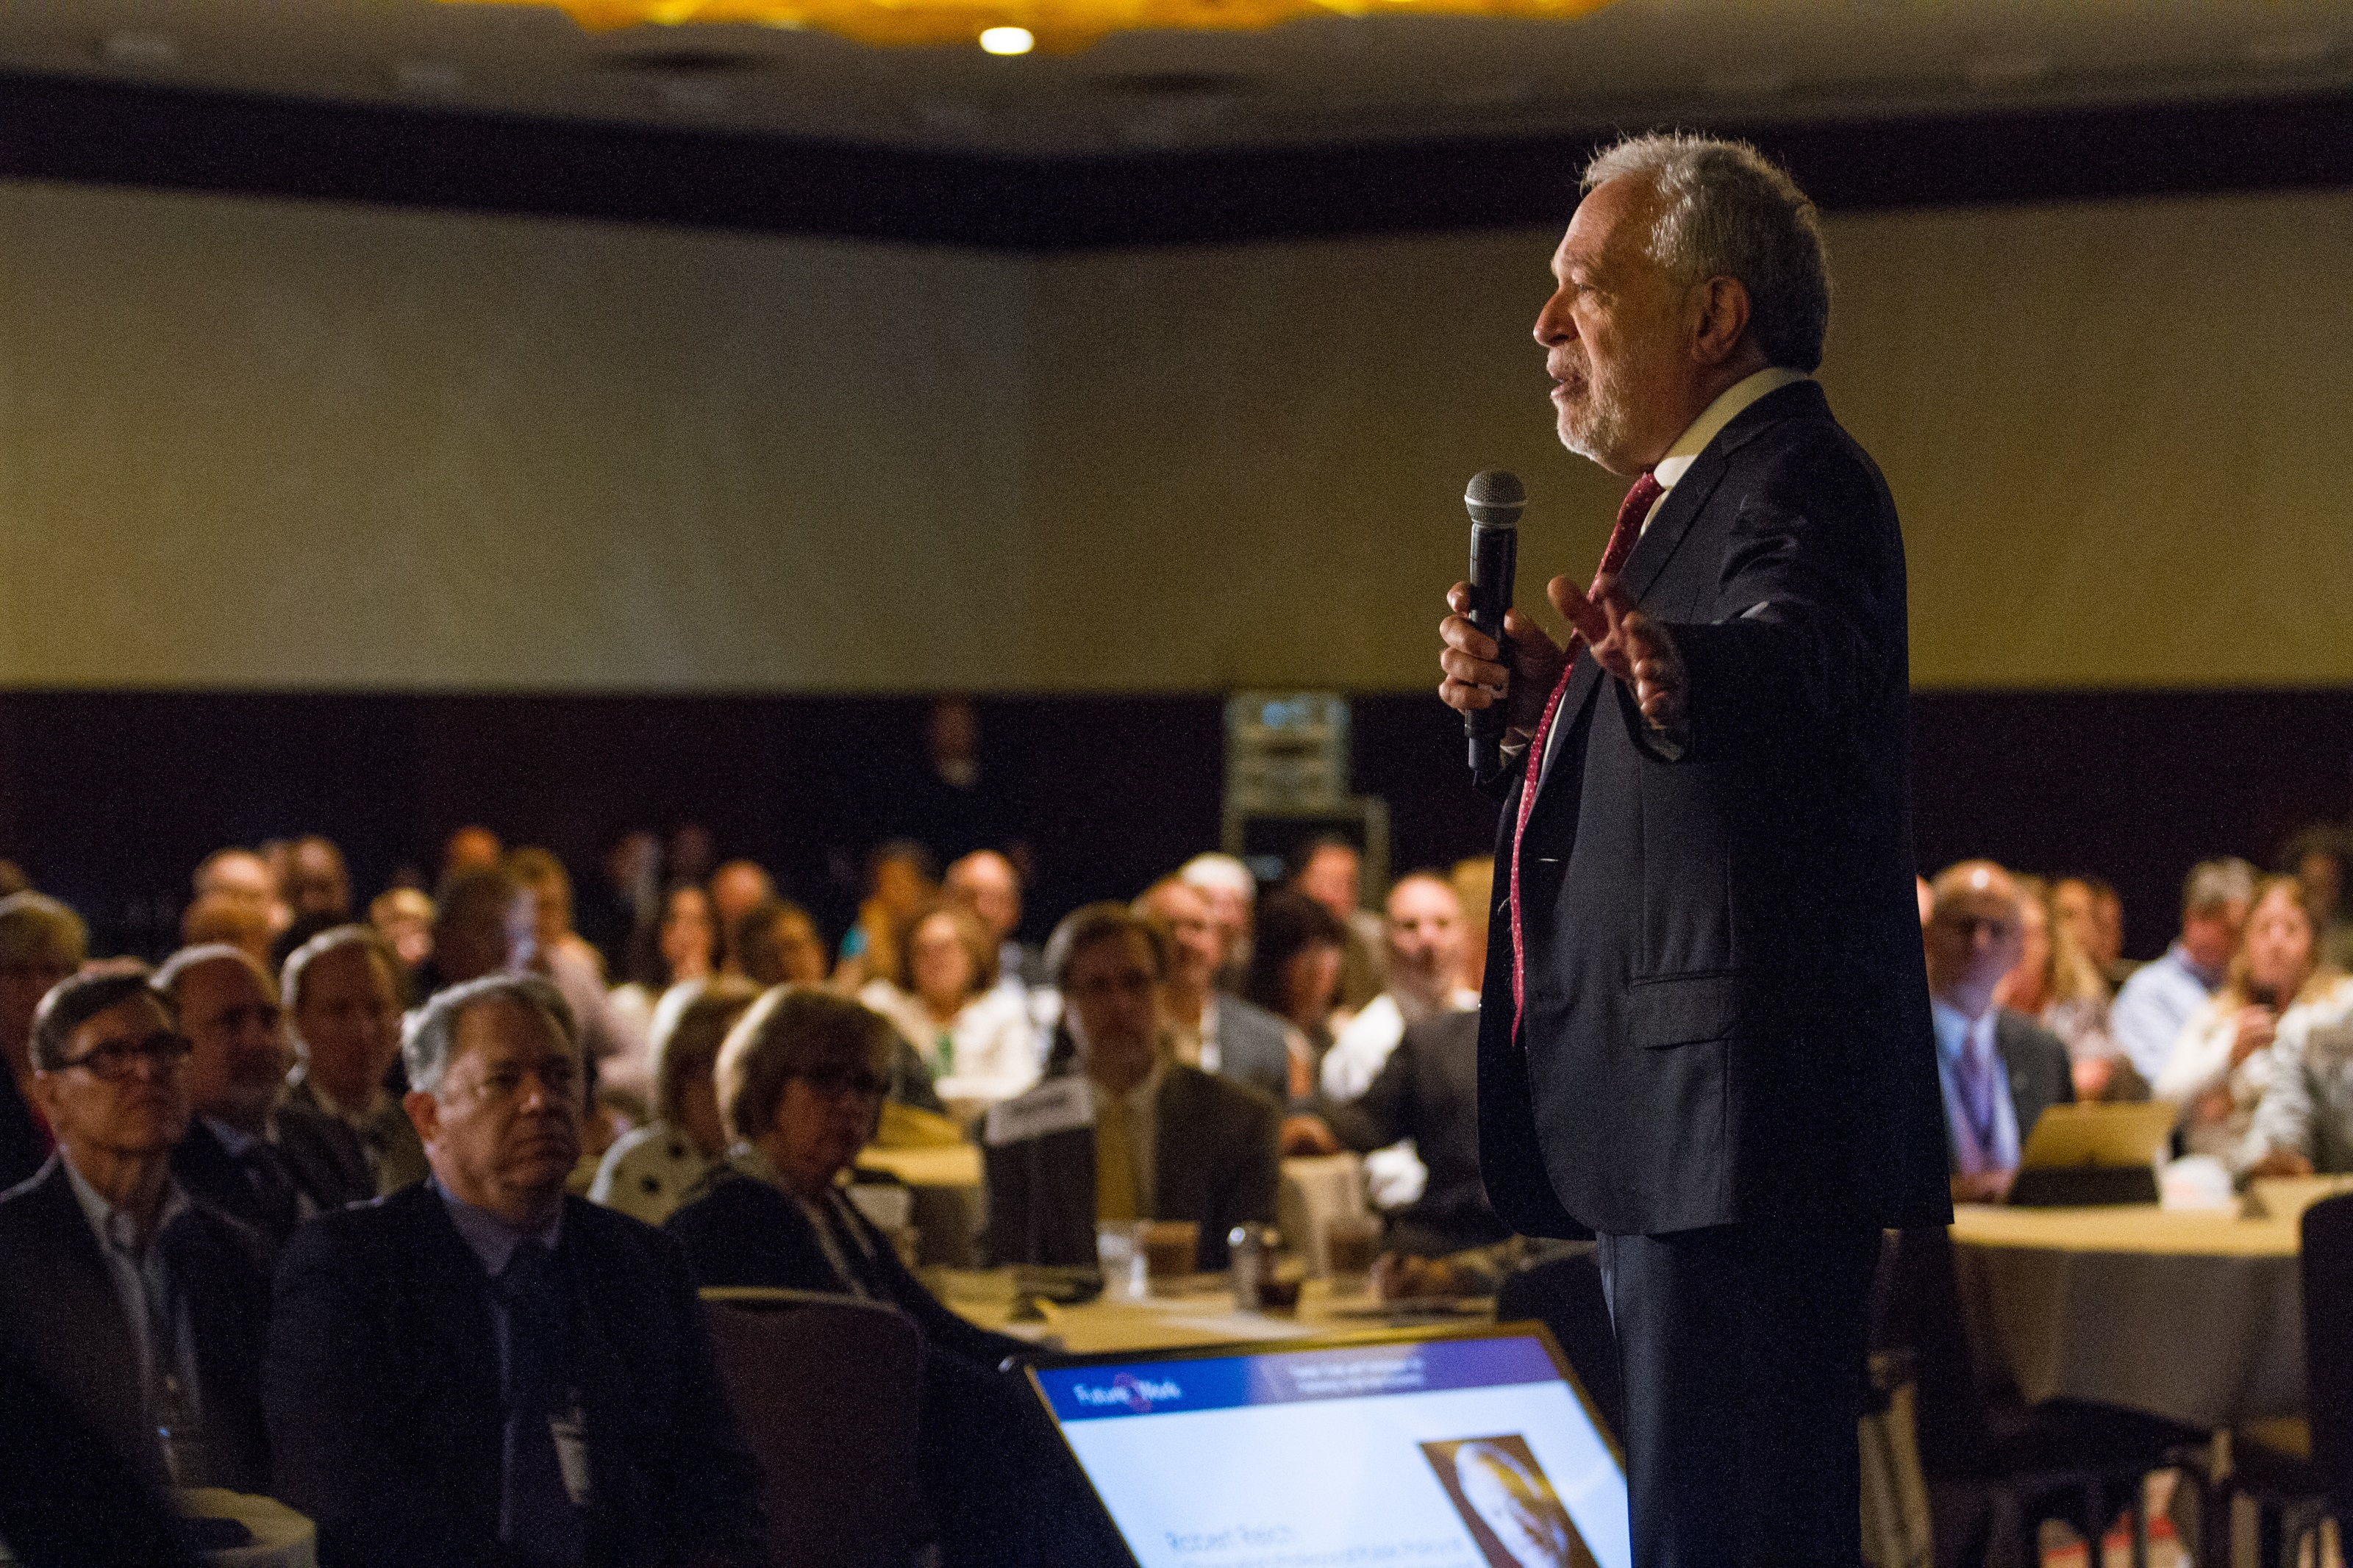 Robert Reich speaking at a conference